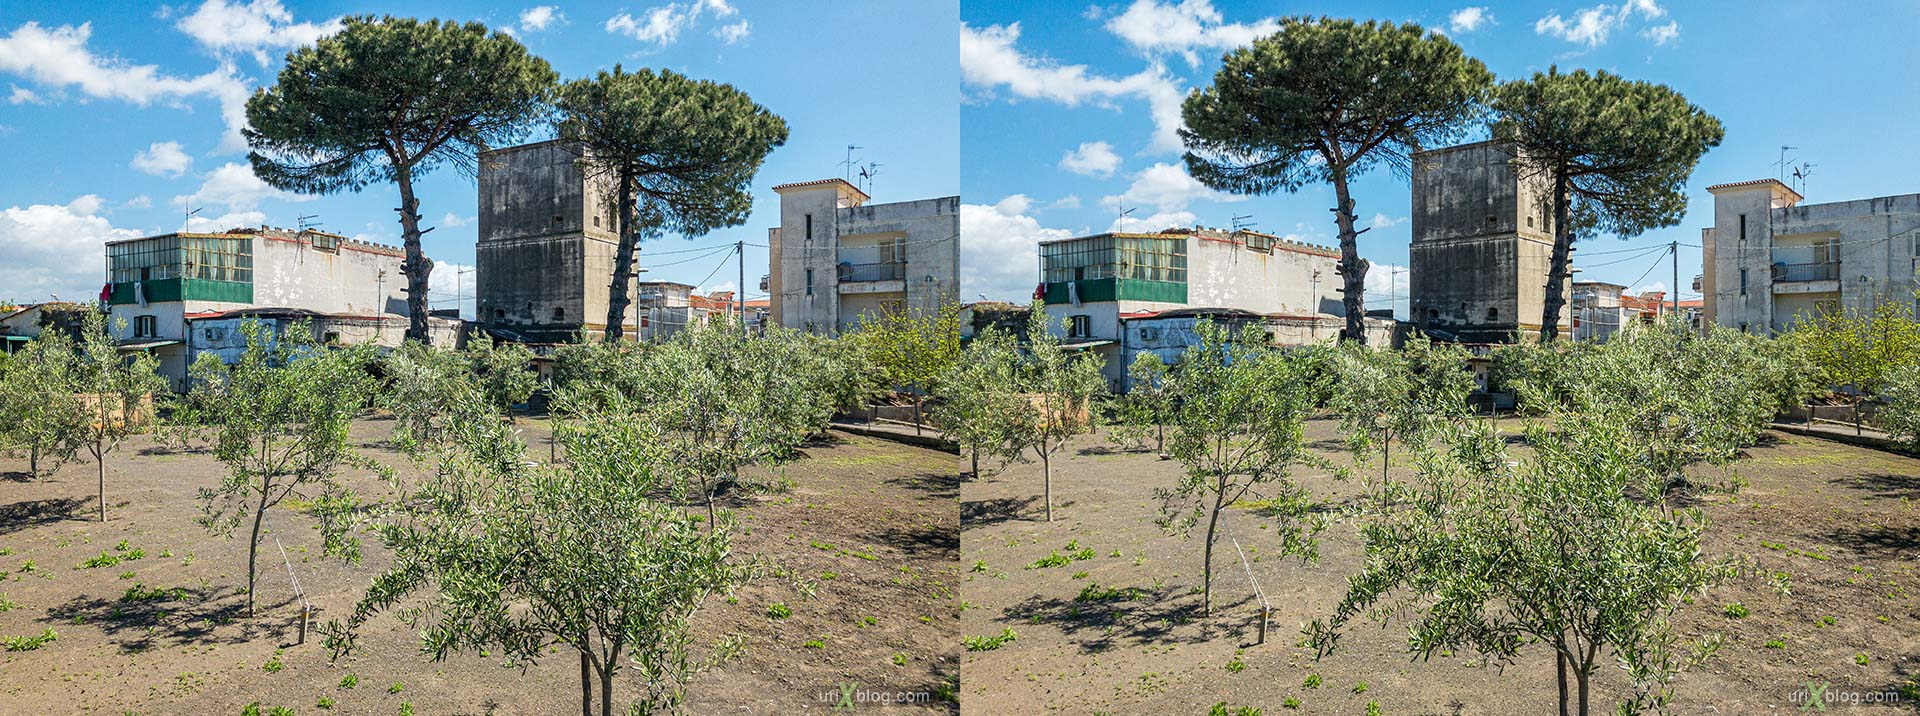 garden, Torre Annunziata, Italy, 3D, stereo pair, cross-eyed, crossview, cross view stereo pair, stereoscopic